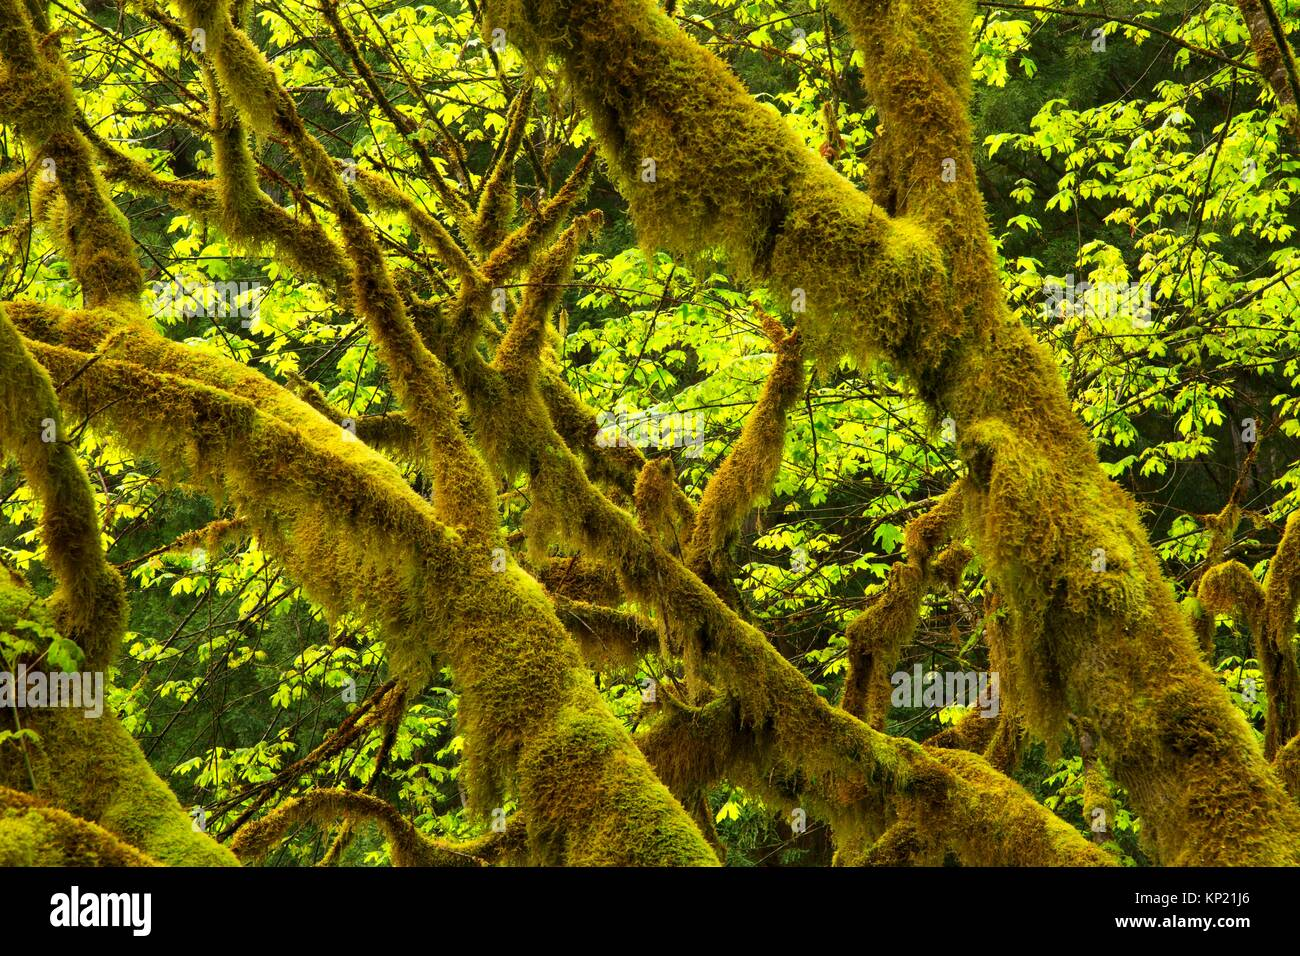 Bigleaf maple along Prairie Creek Trail, Prairie Creek Redwoods State Park, Redwood National Park, California. - Stock Image